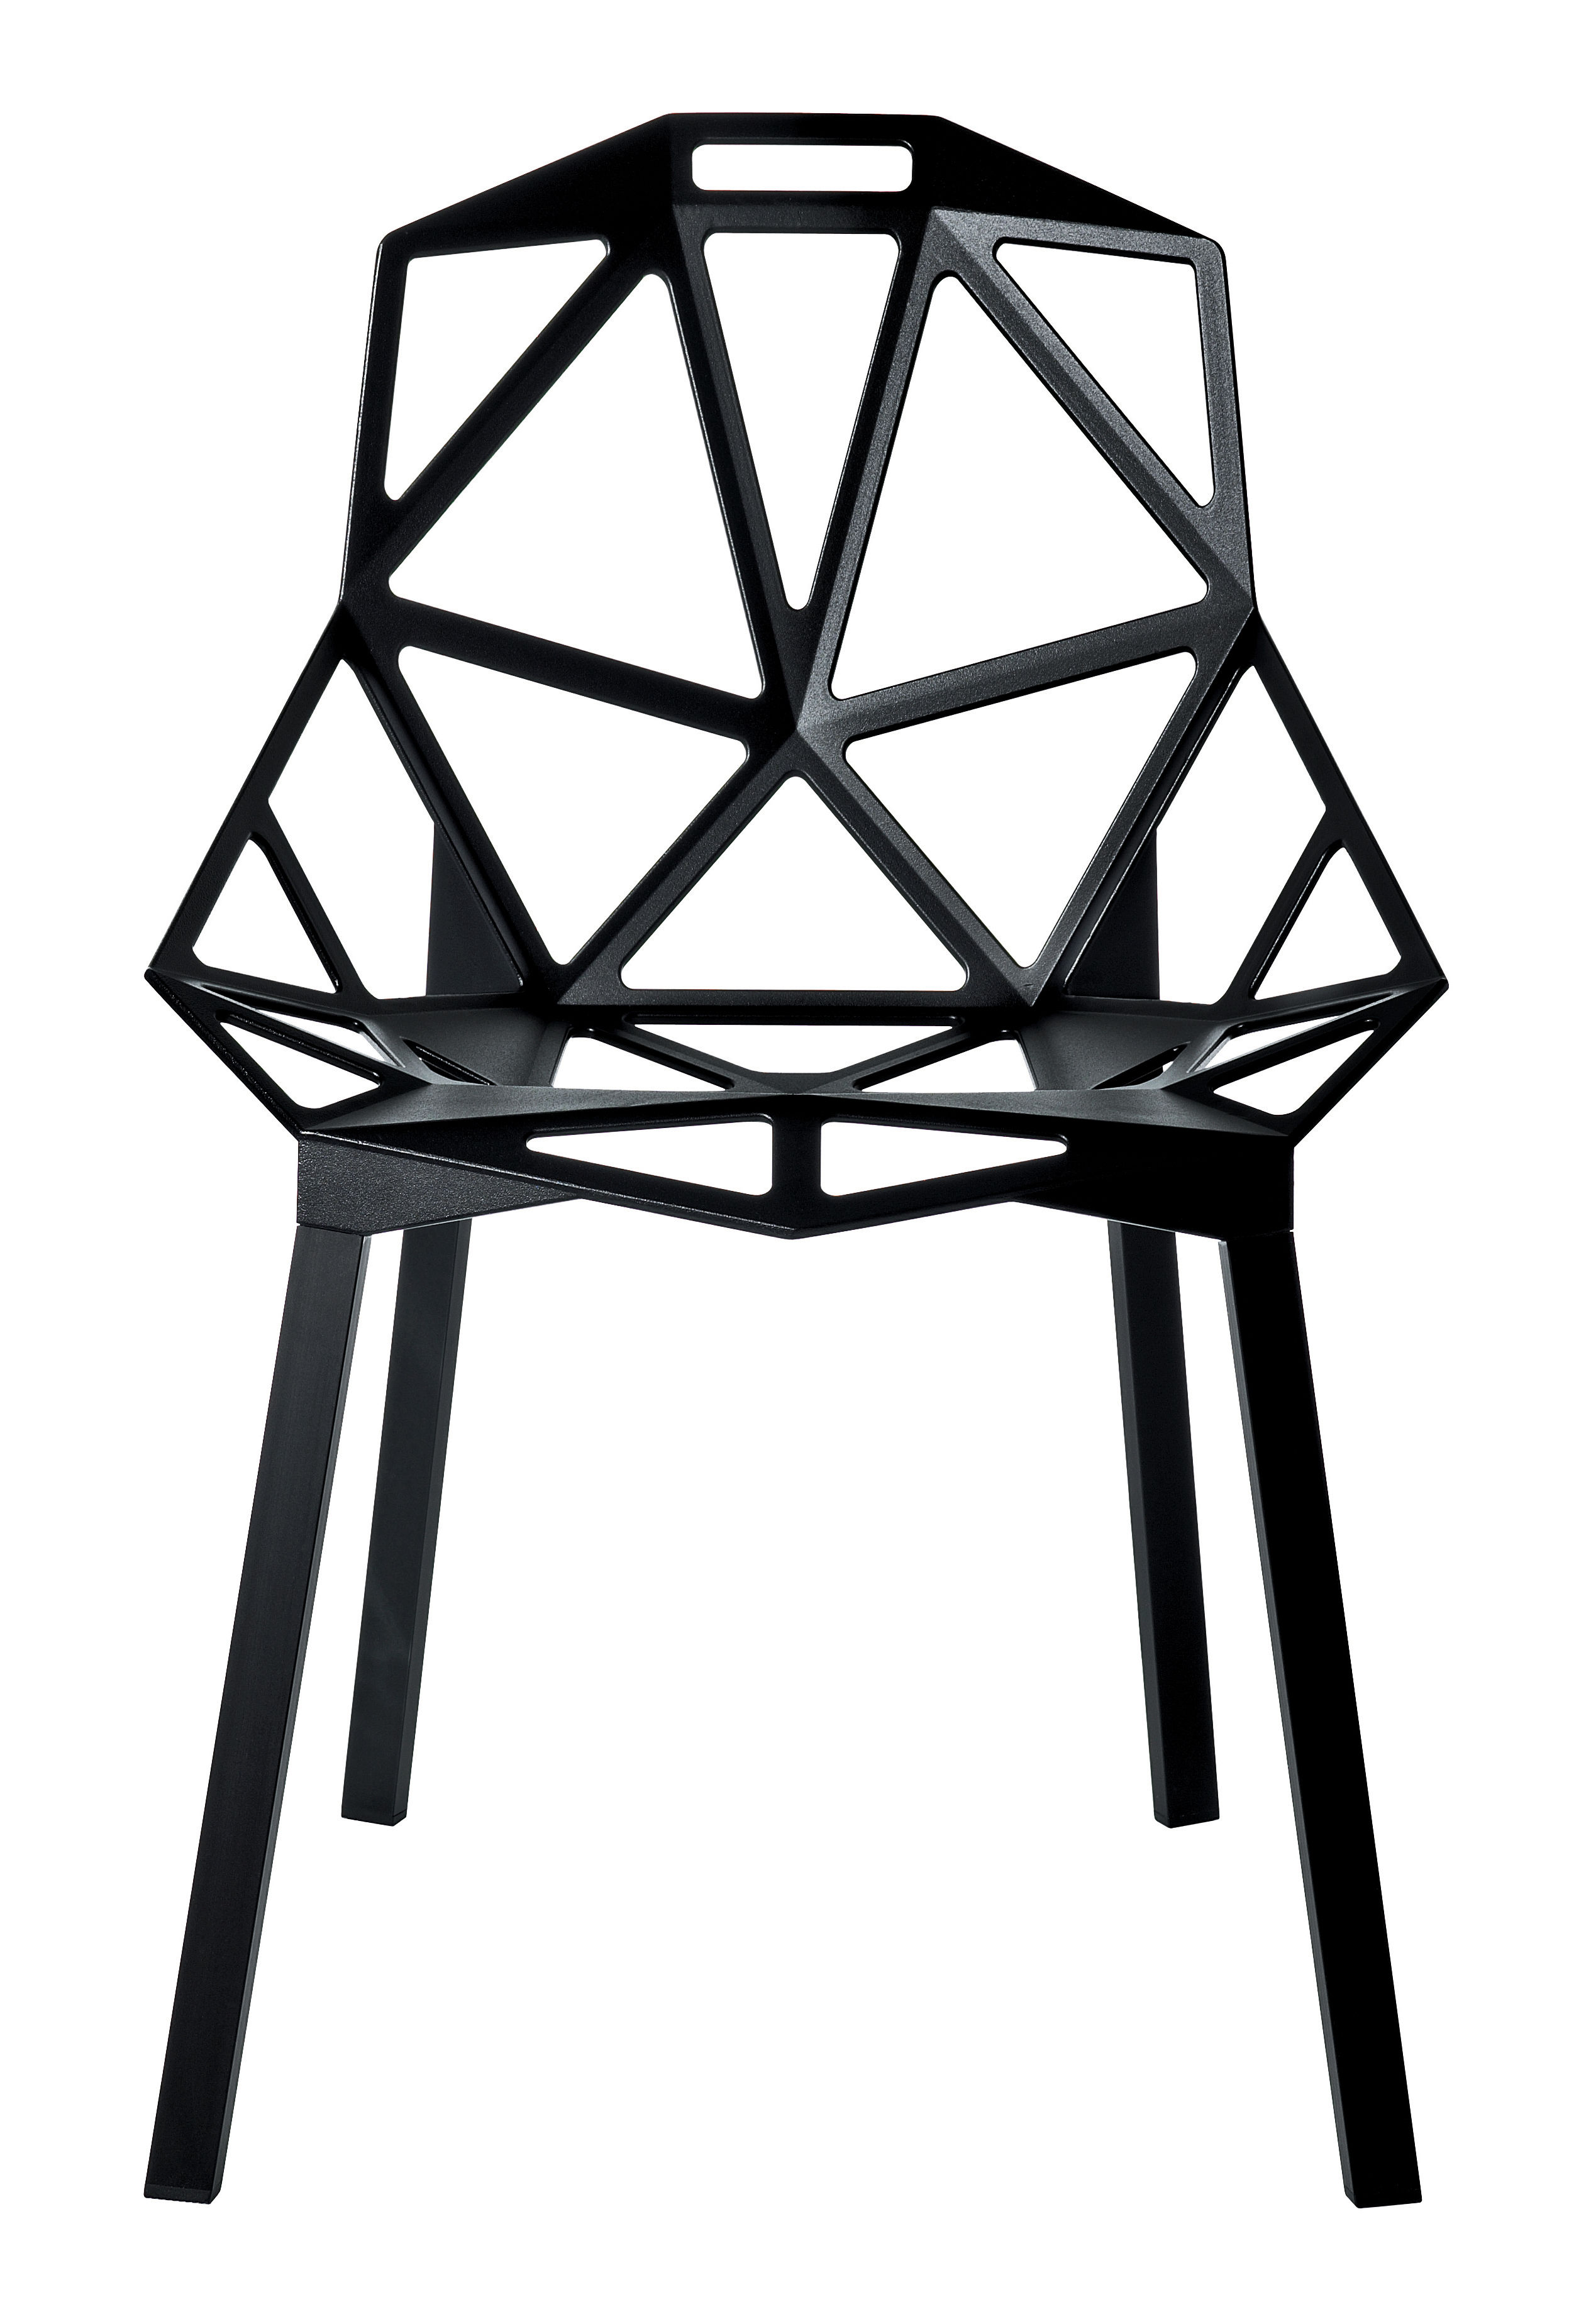 Furniture - Chairs - Chair one Stacking chair - Metal by Magis - Black - Varnished aluminium, Varnished cast aluminium